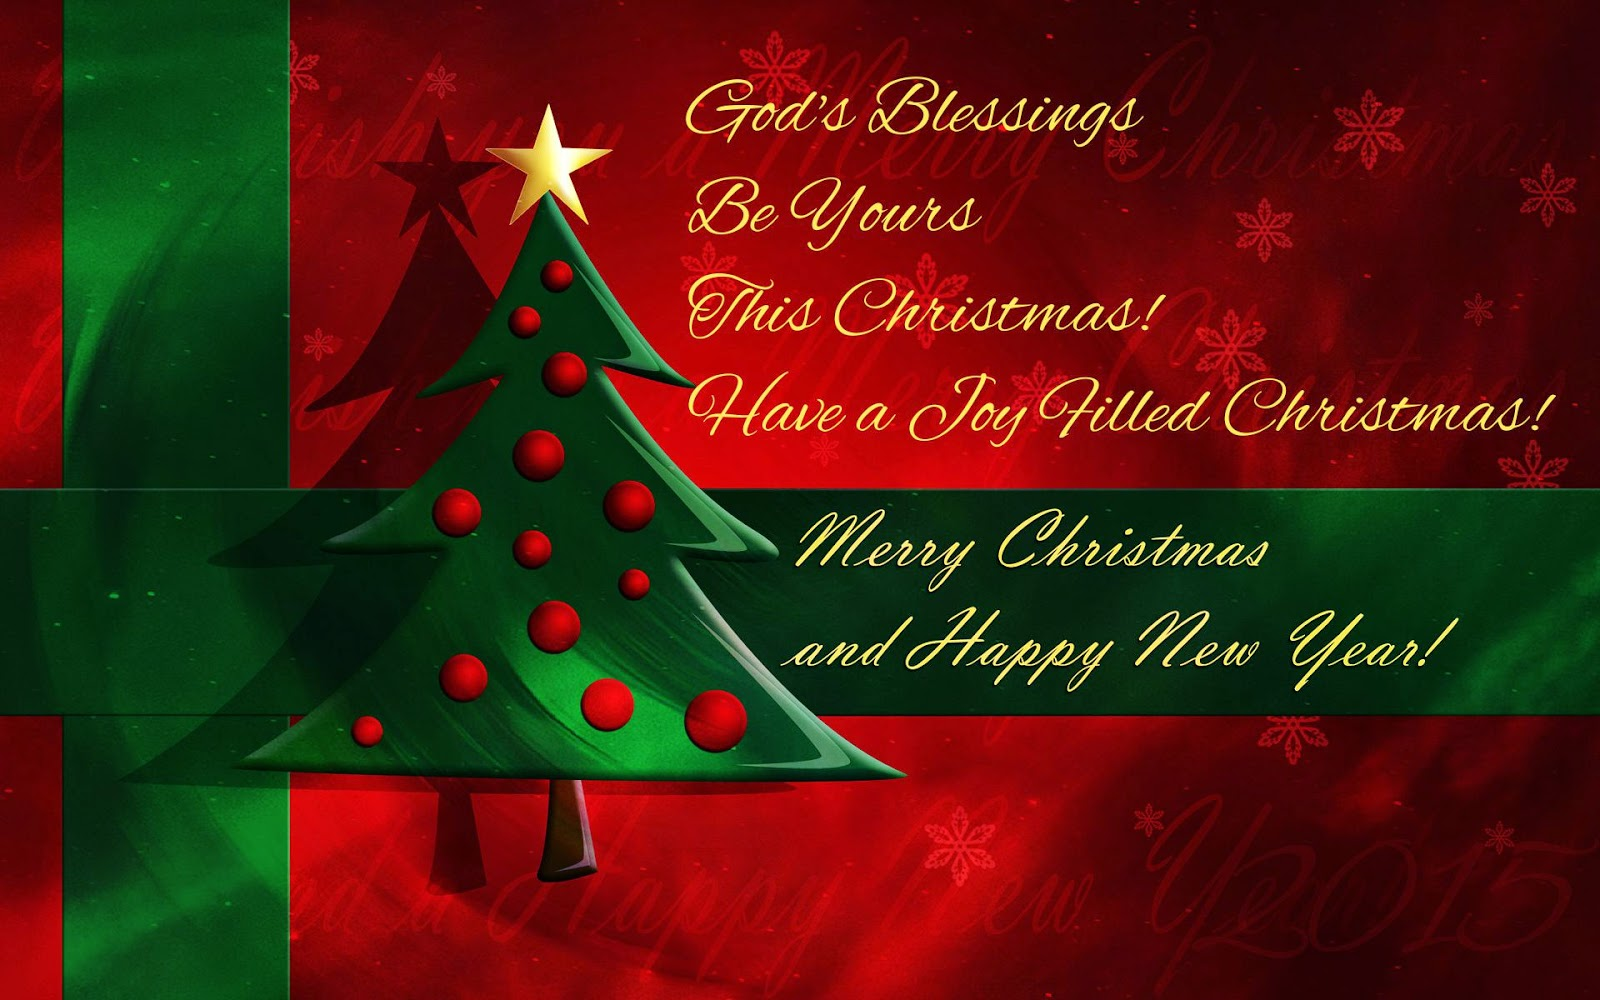 Merry Christmas And Happy New Year Quotes Wishes For Cards Merry